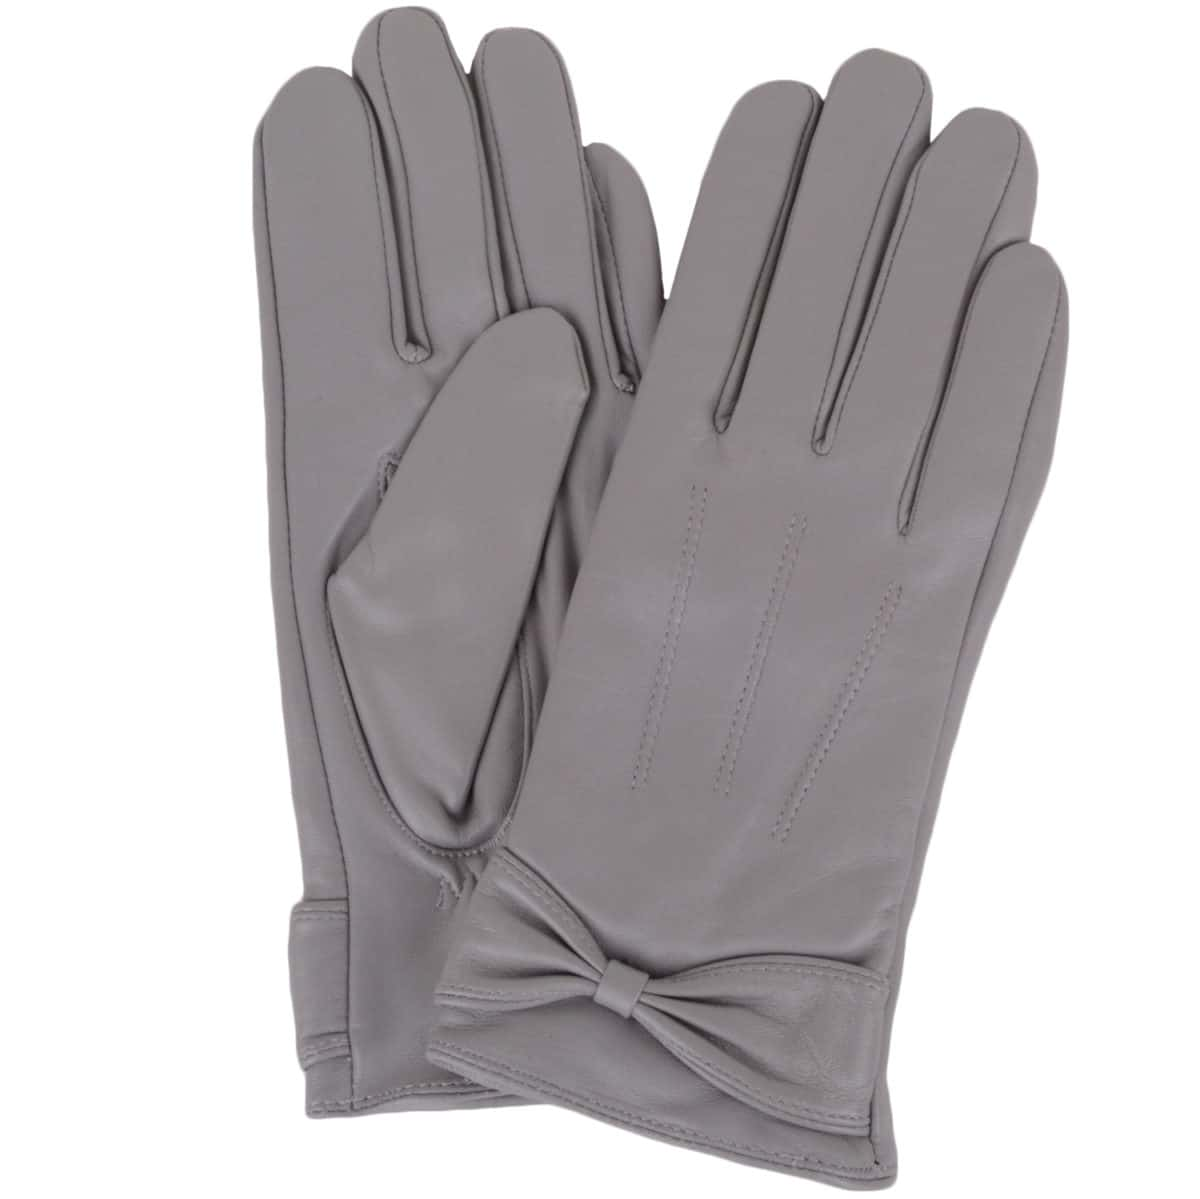 Alwen - Leather Gloves with Bow Design - Grey